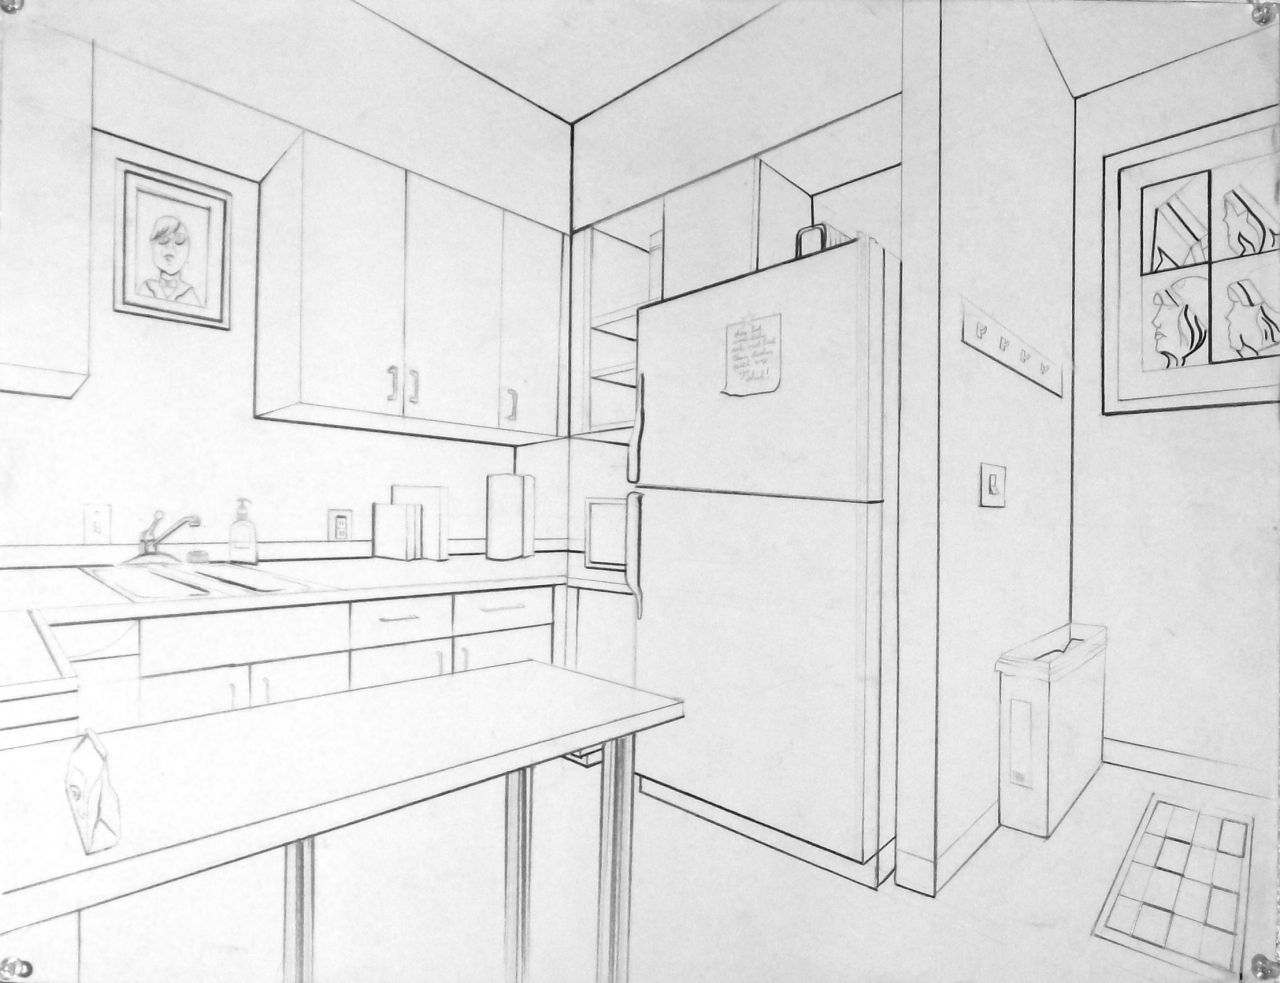 Captivating Drawing 2: Two Point Perspective Interior Examples   Draw A Corner In The  Kitchen Part 11